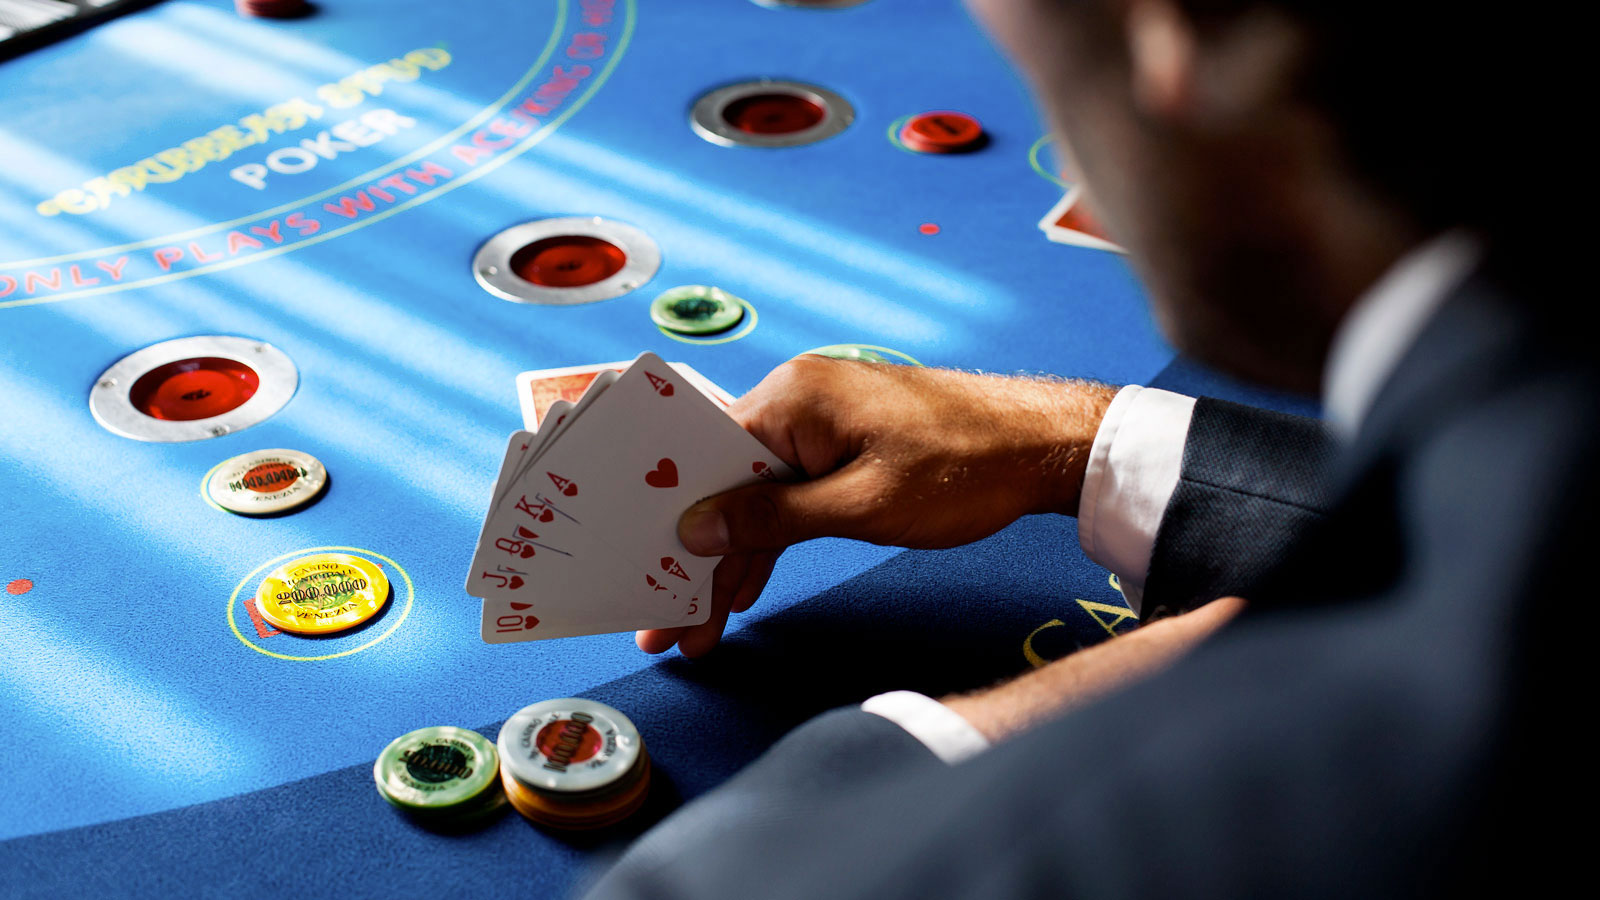 You Must Read This Before Registering On Any Casino Site